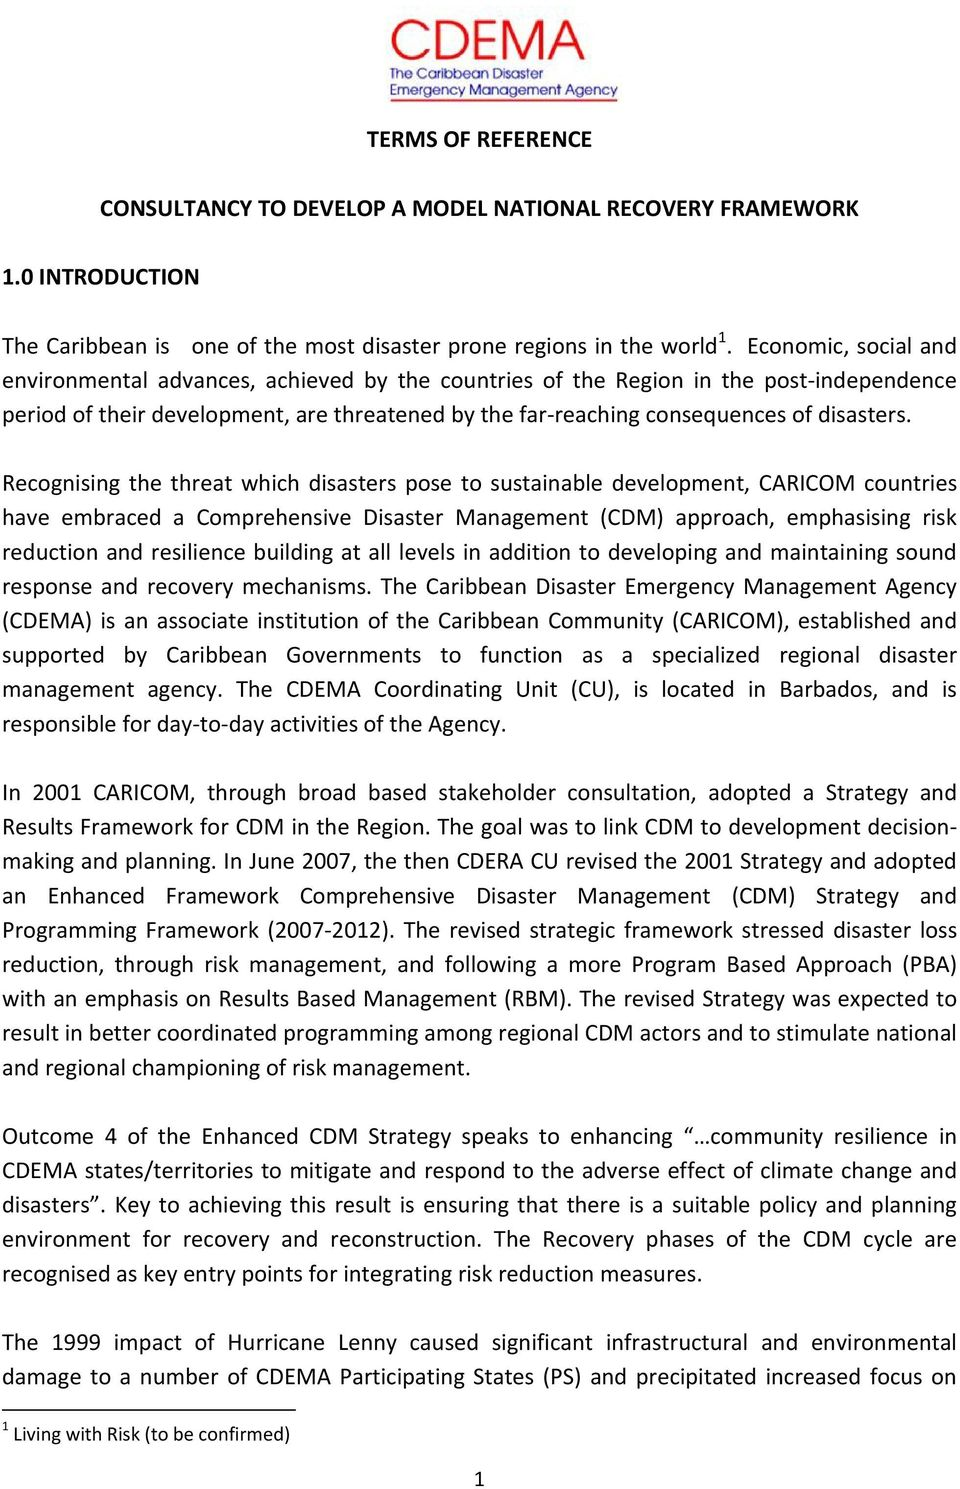 Recognising the threat which disasters pose to sustainable development, CARICOM countries have embraced a Comprehensive Disaster Management (CDM) approach, emphasising risk reduction and resilience